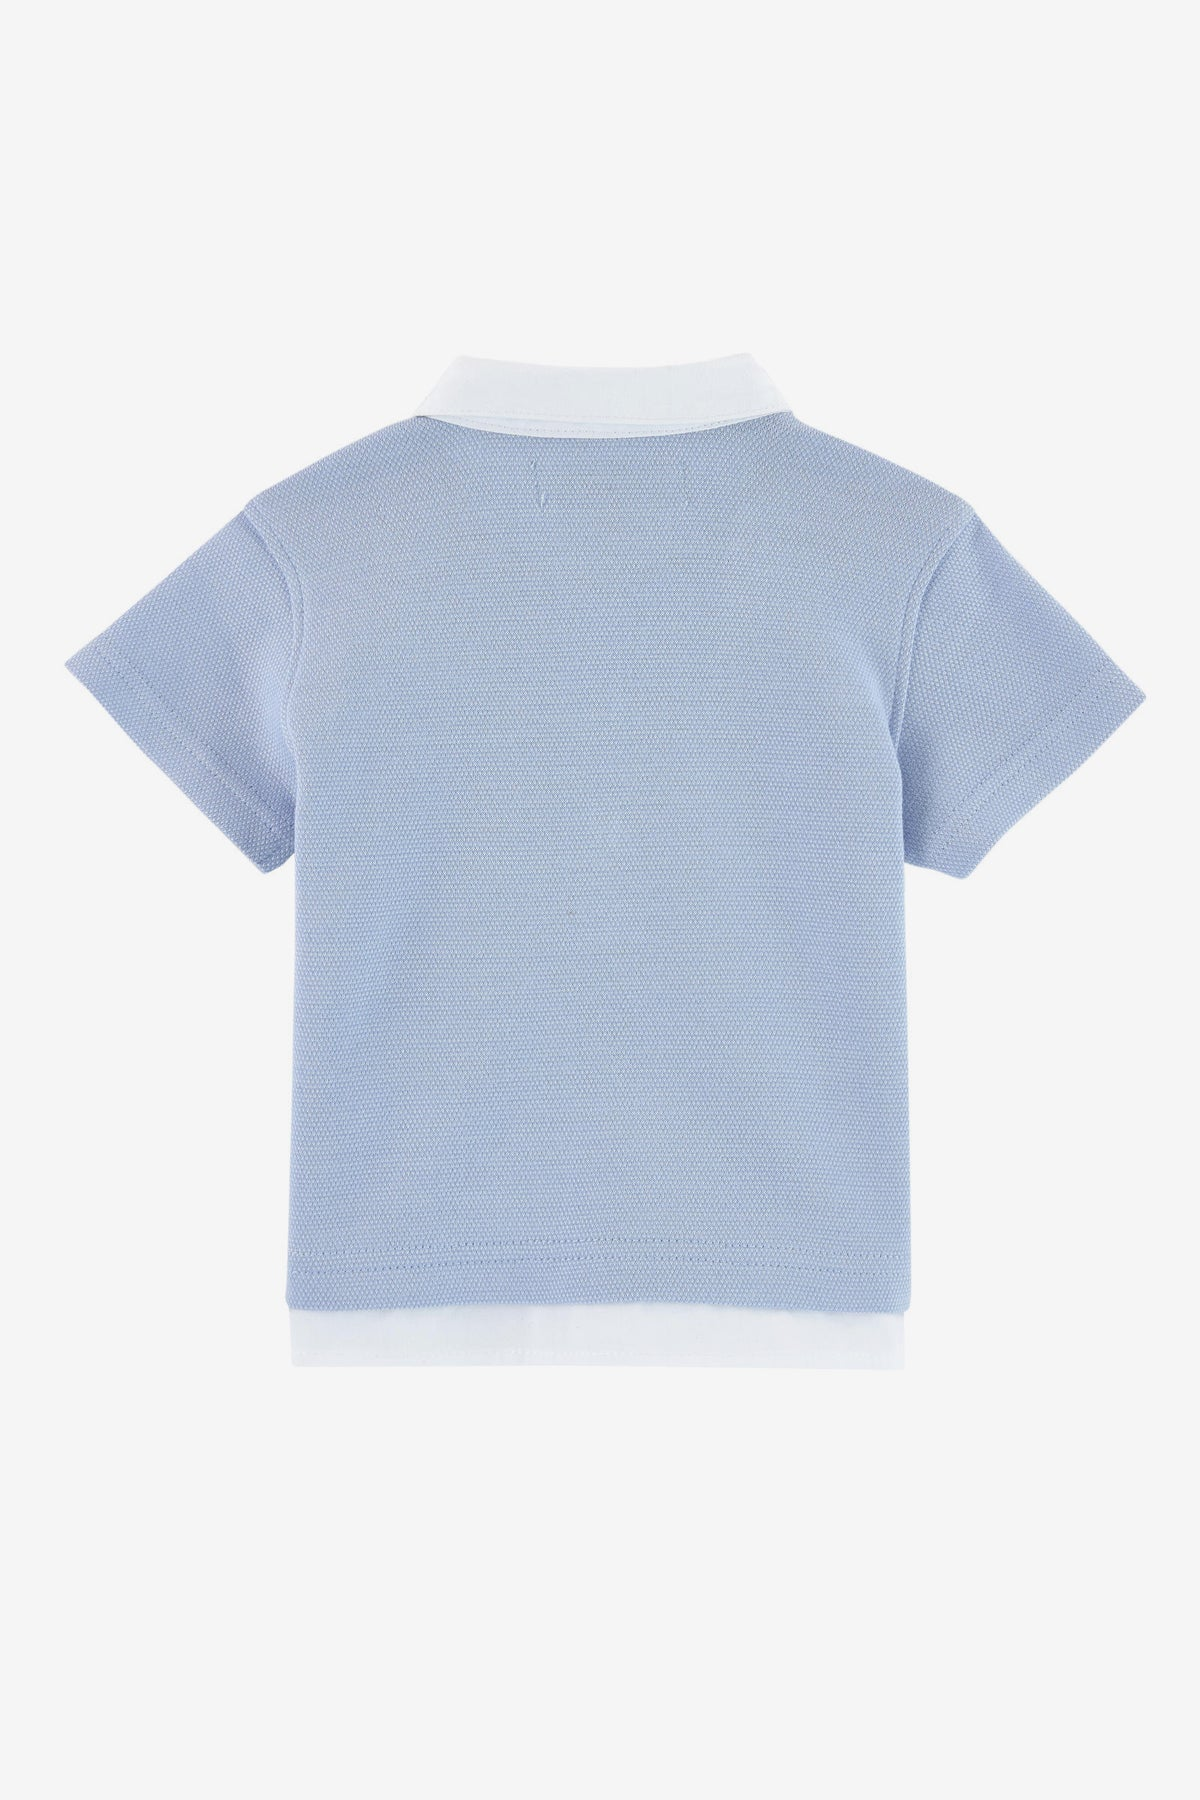 Jean Bourget Baby Boys Polo shirt